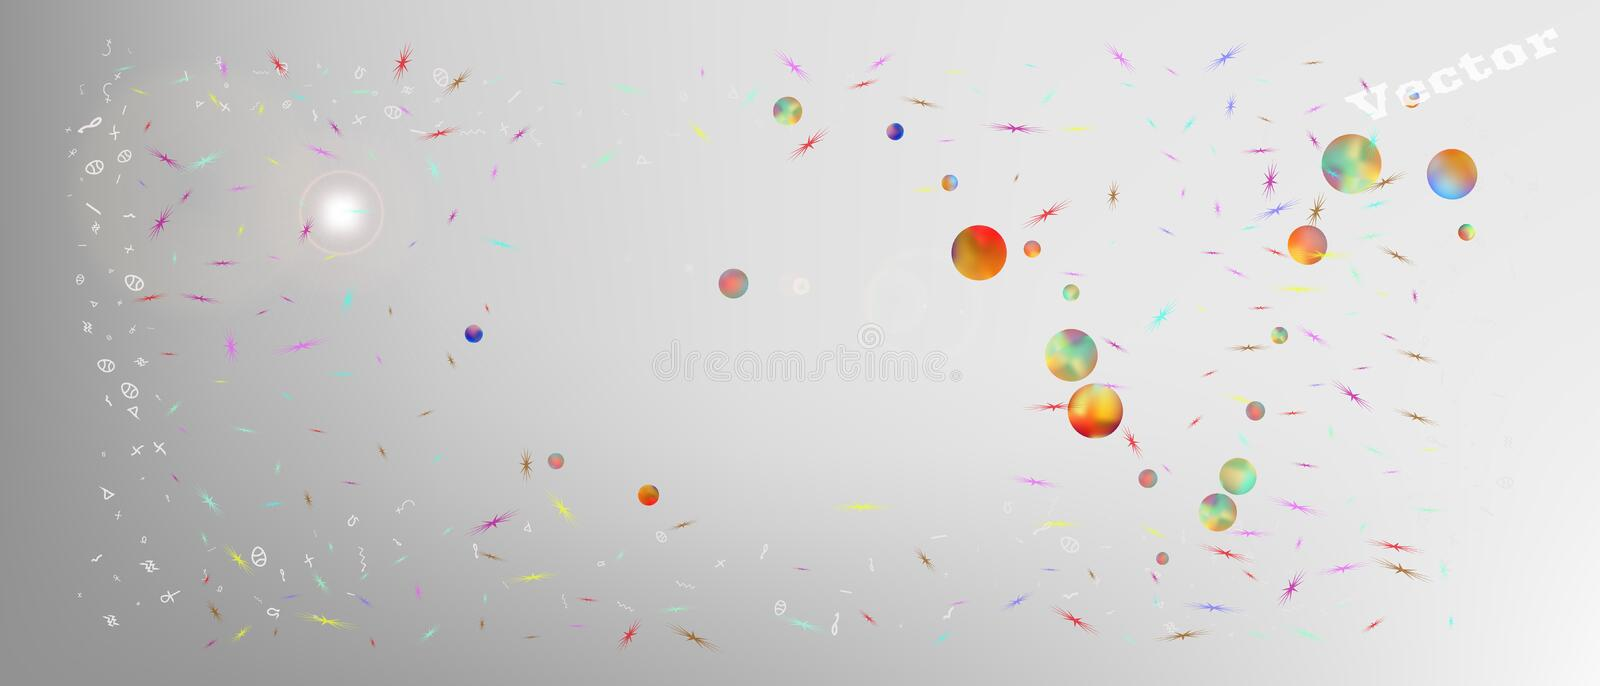 Liquid abstract ultra wide space background stock image